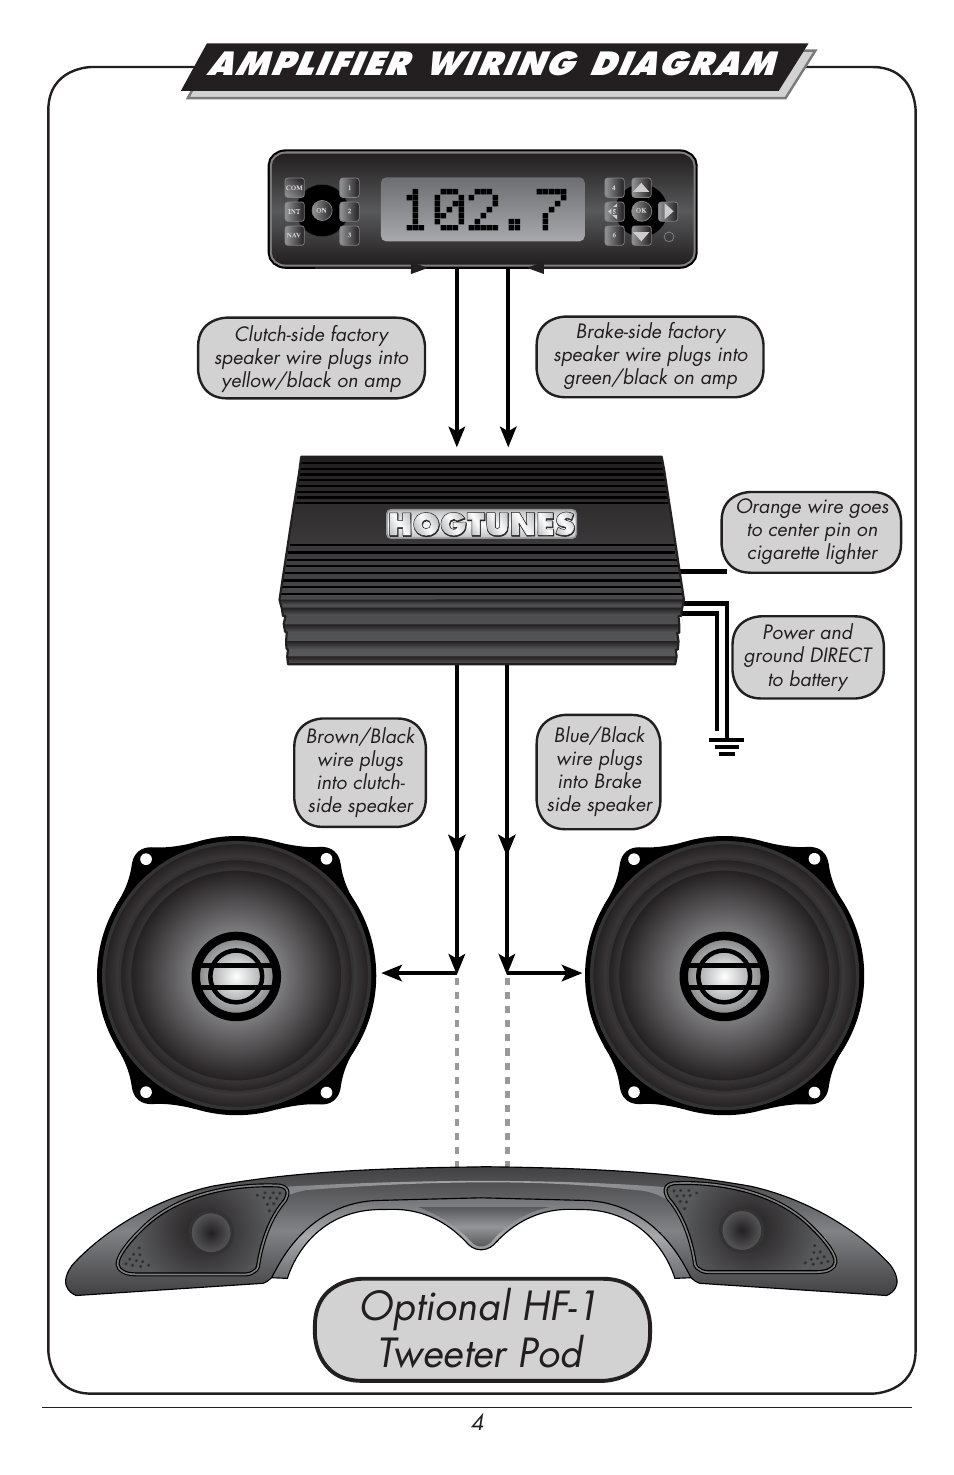 Optional hf-1 tweeter pod, Amplifier wiring diagram | Hogtunes REV 200SG  KIT-AA : 2 Channel Amp / Speakers (1998 - 2013 - model years) User Manual |  Page 4 / 12 | Hogtunes Amp Wiring Diagram |  | Manuals Directory